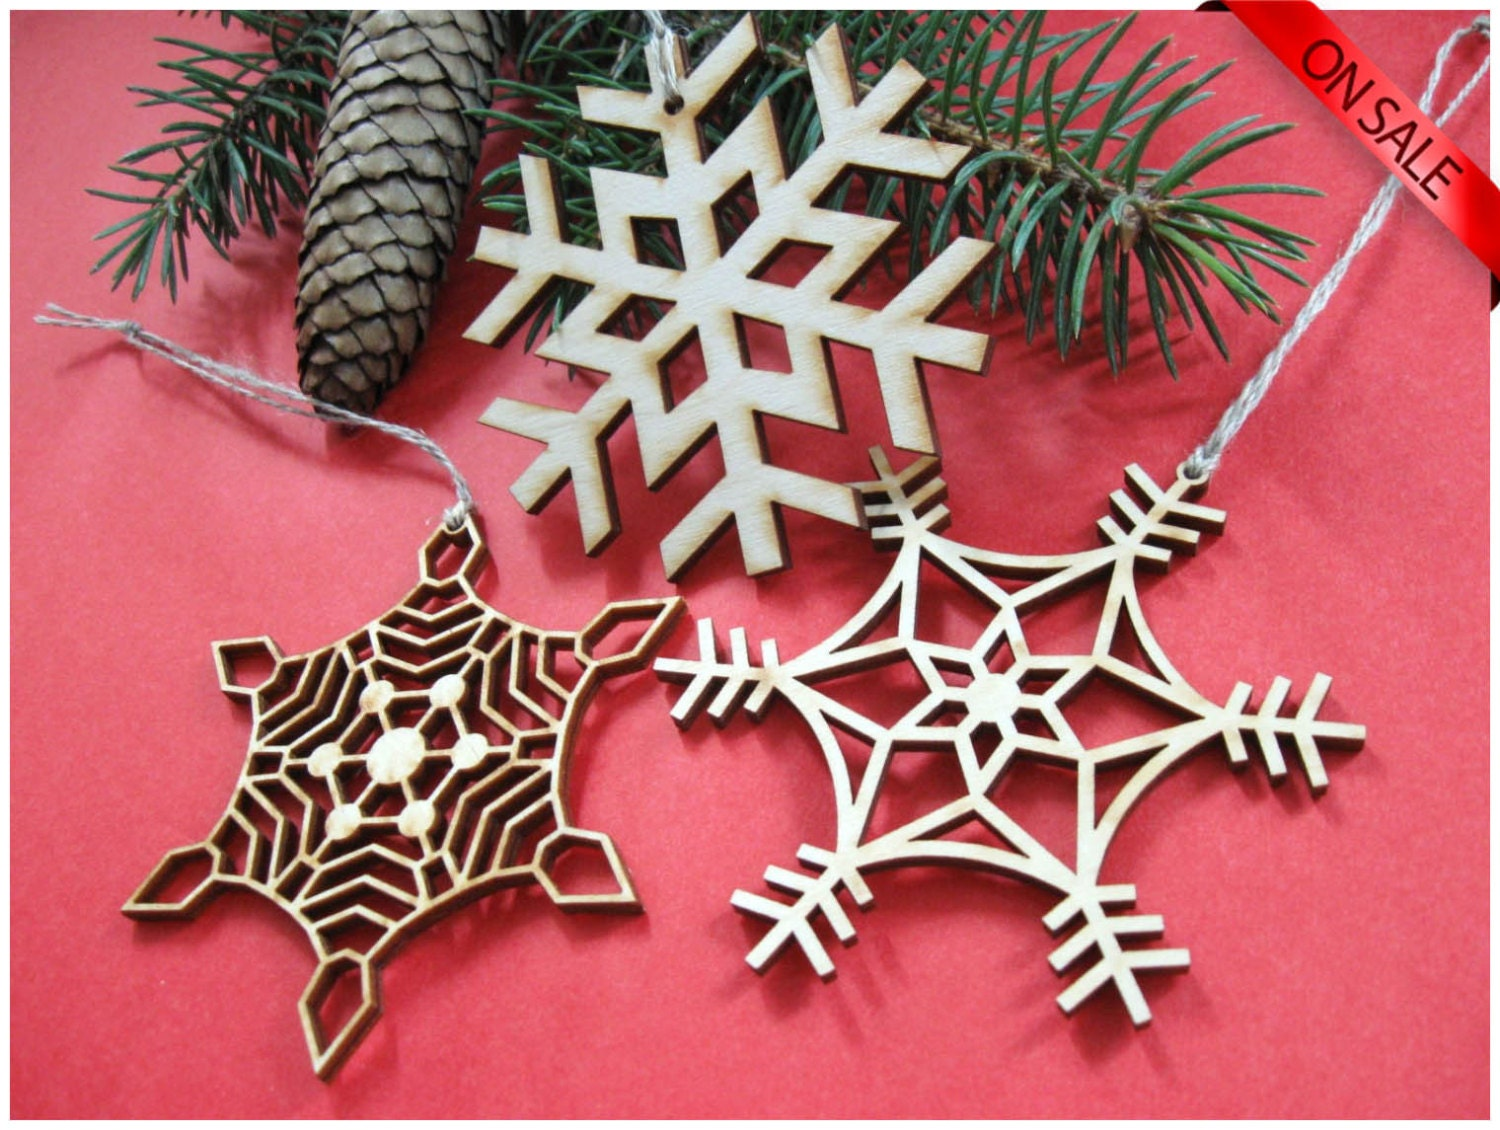 Top 28 on sale christmas tree ornaments christmas sale for Christmas ornament sale clearance